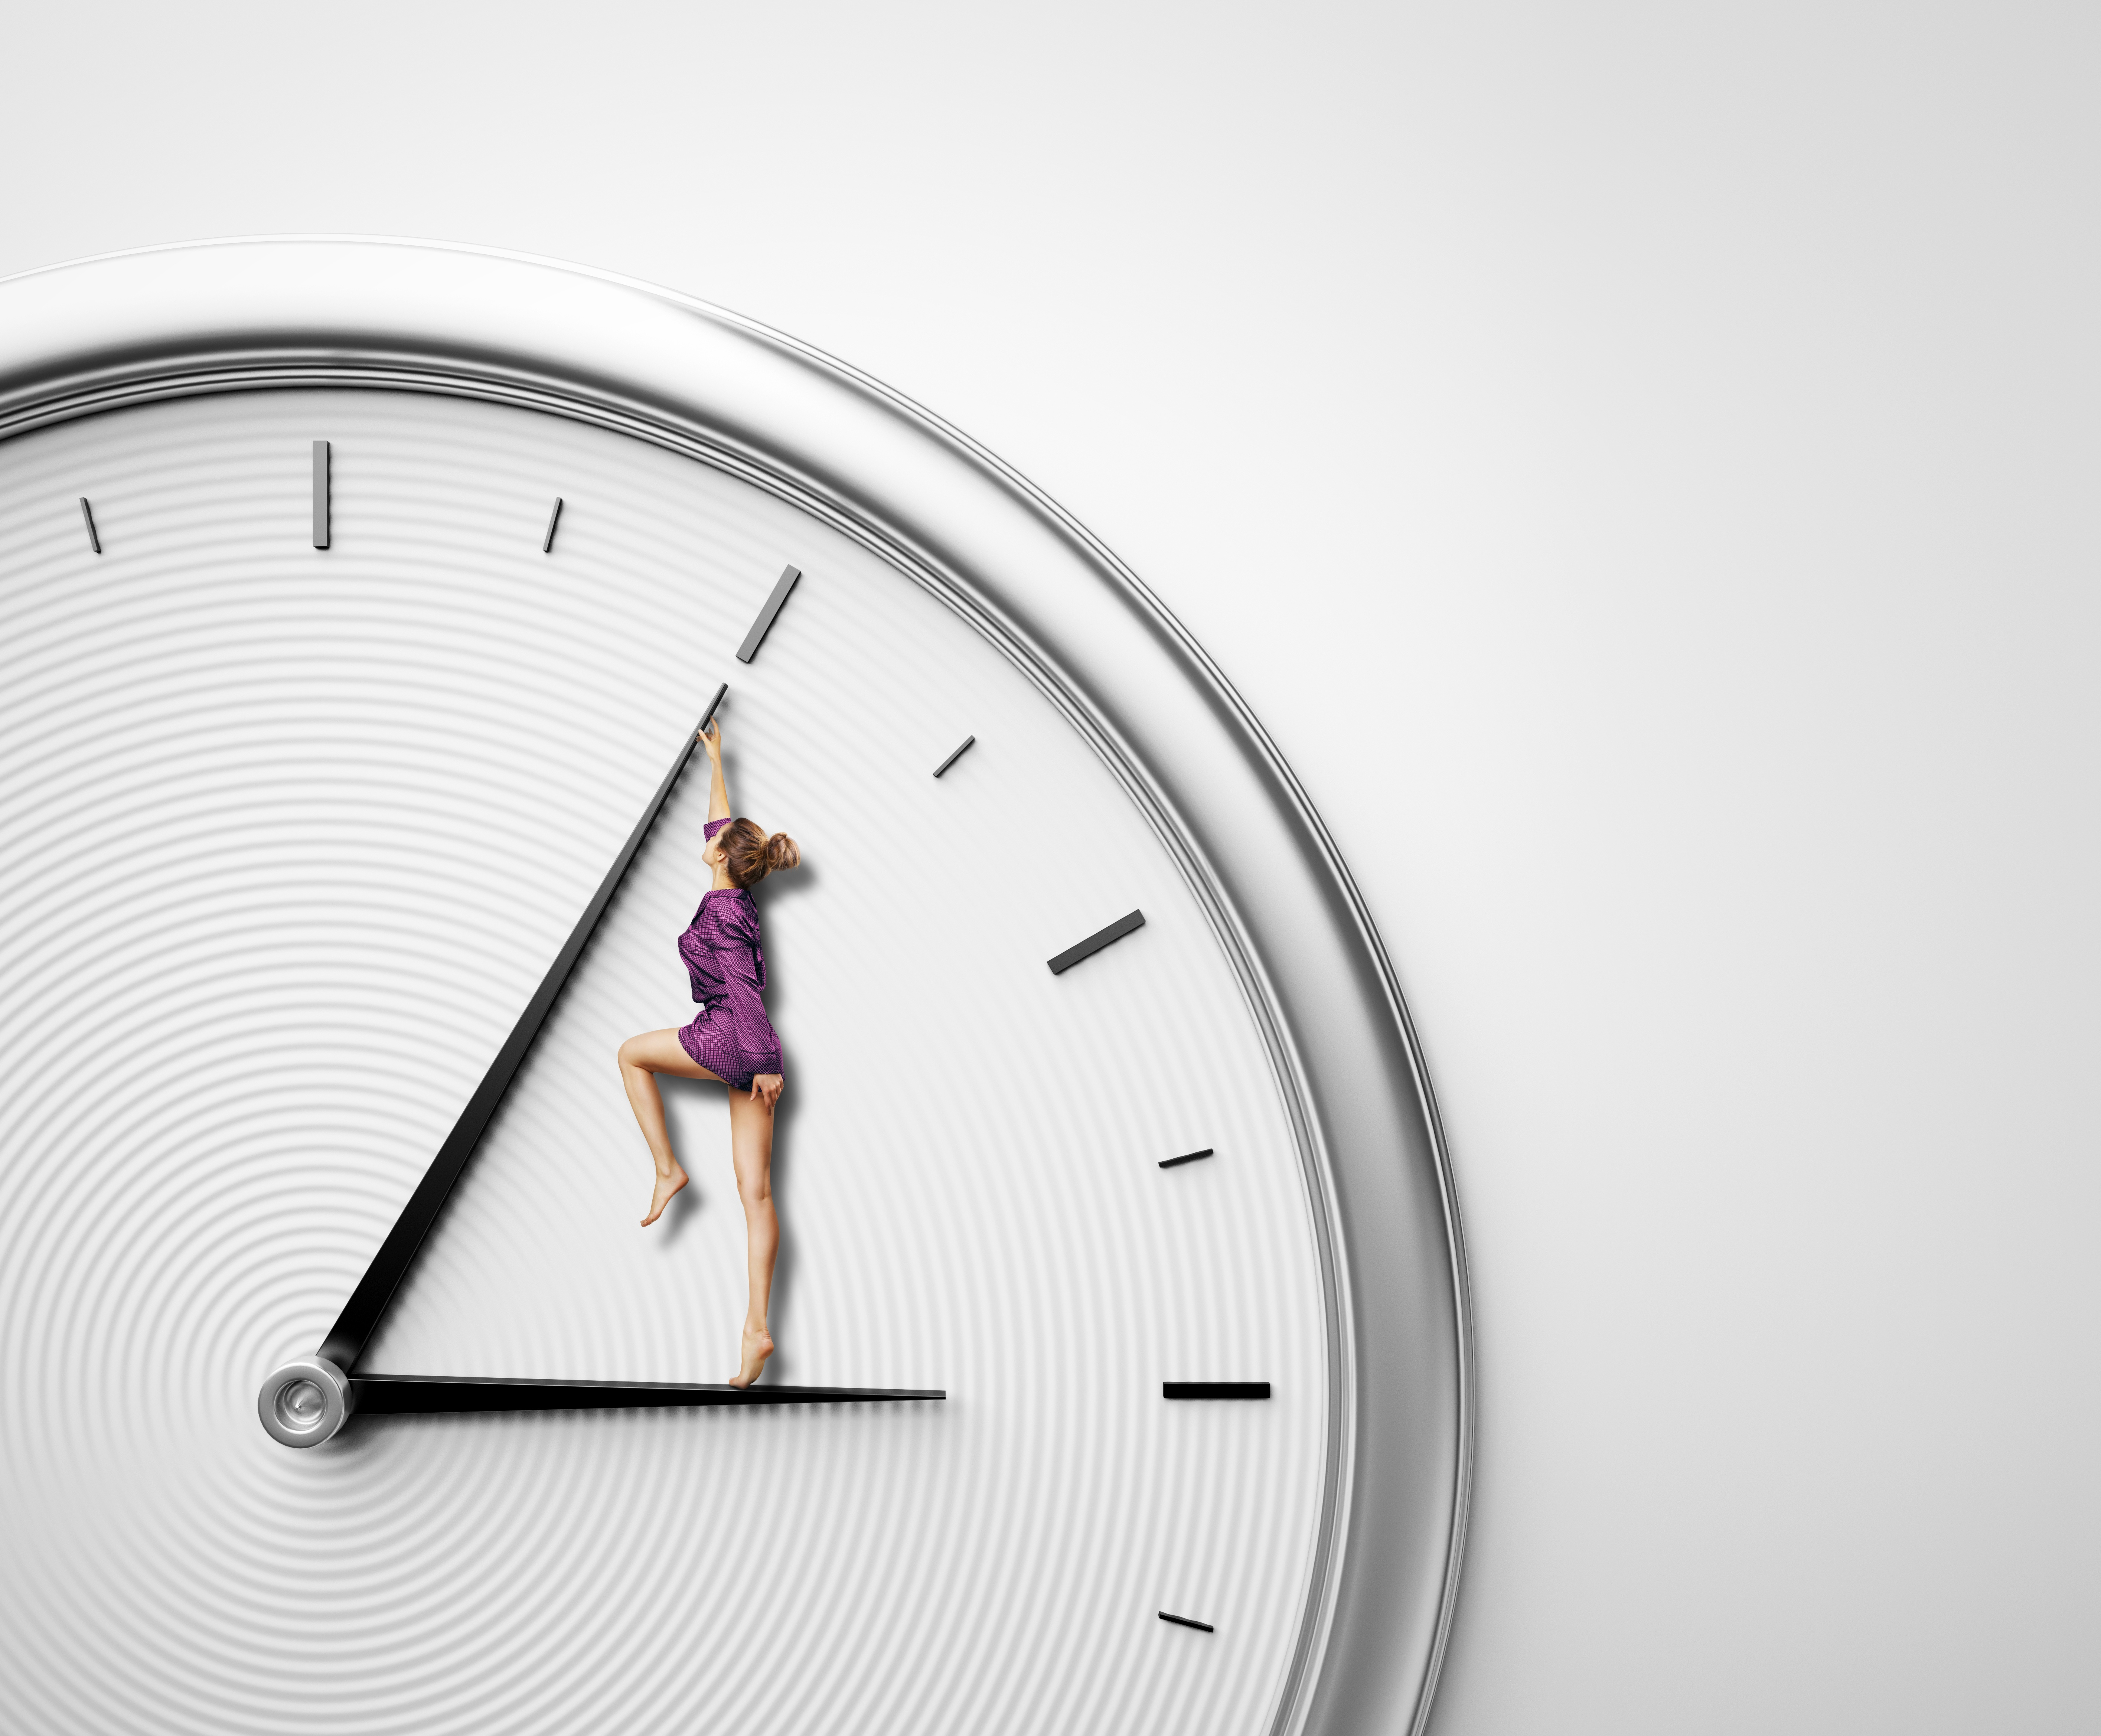 woman in a purple jumper standing on hour hand of clock and pushing minute hand backward